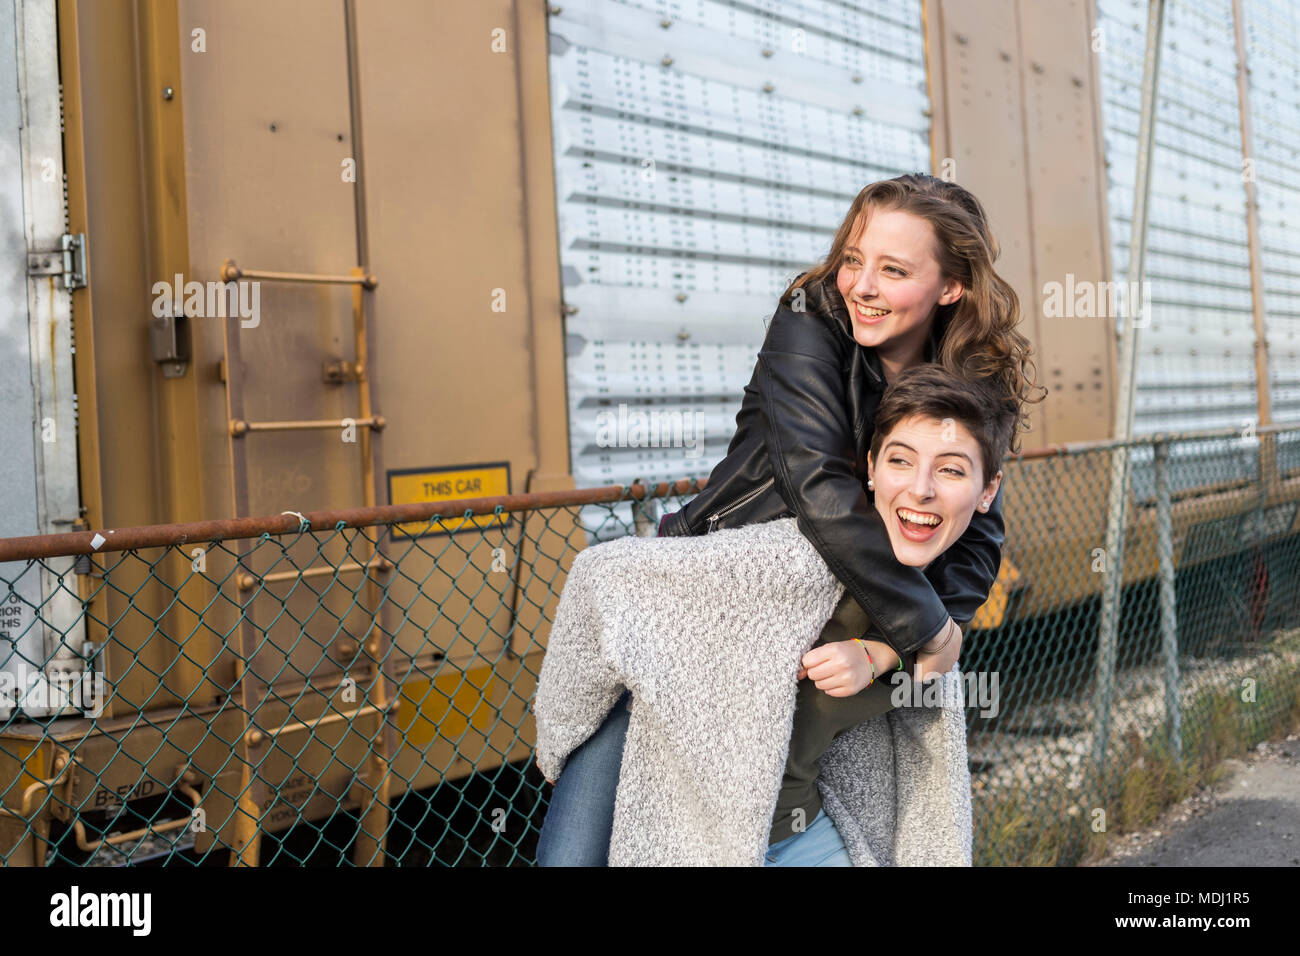 Two young women in a playful pose beside a train car; New Westminster, British Columbia, Canada - Stock Image